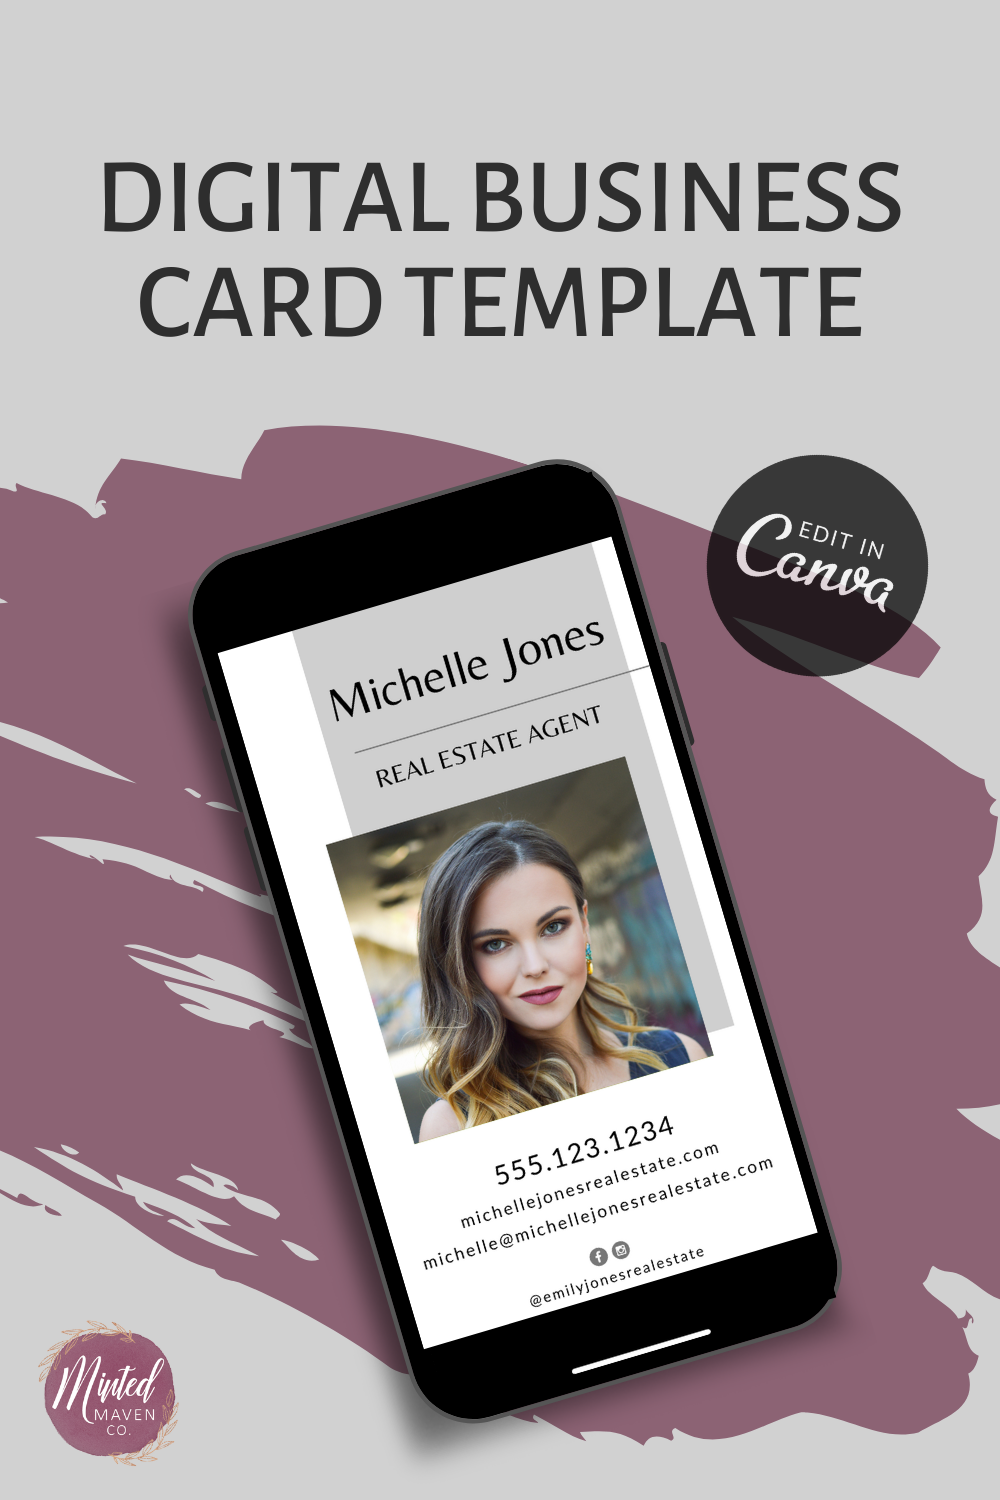 Digital Business Card With Photo Customize Business Card Real Estate Business Card Realtor Business Card Digital Download Bc001 In 2020 Realtor Business Cards Digital Business Card Custom Business Cards